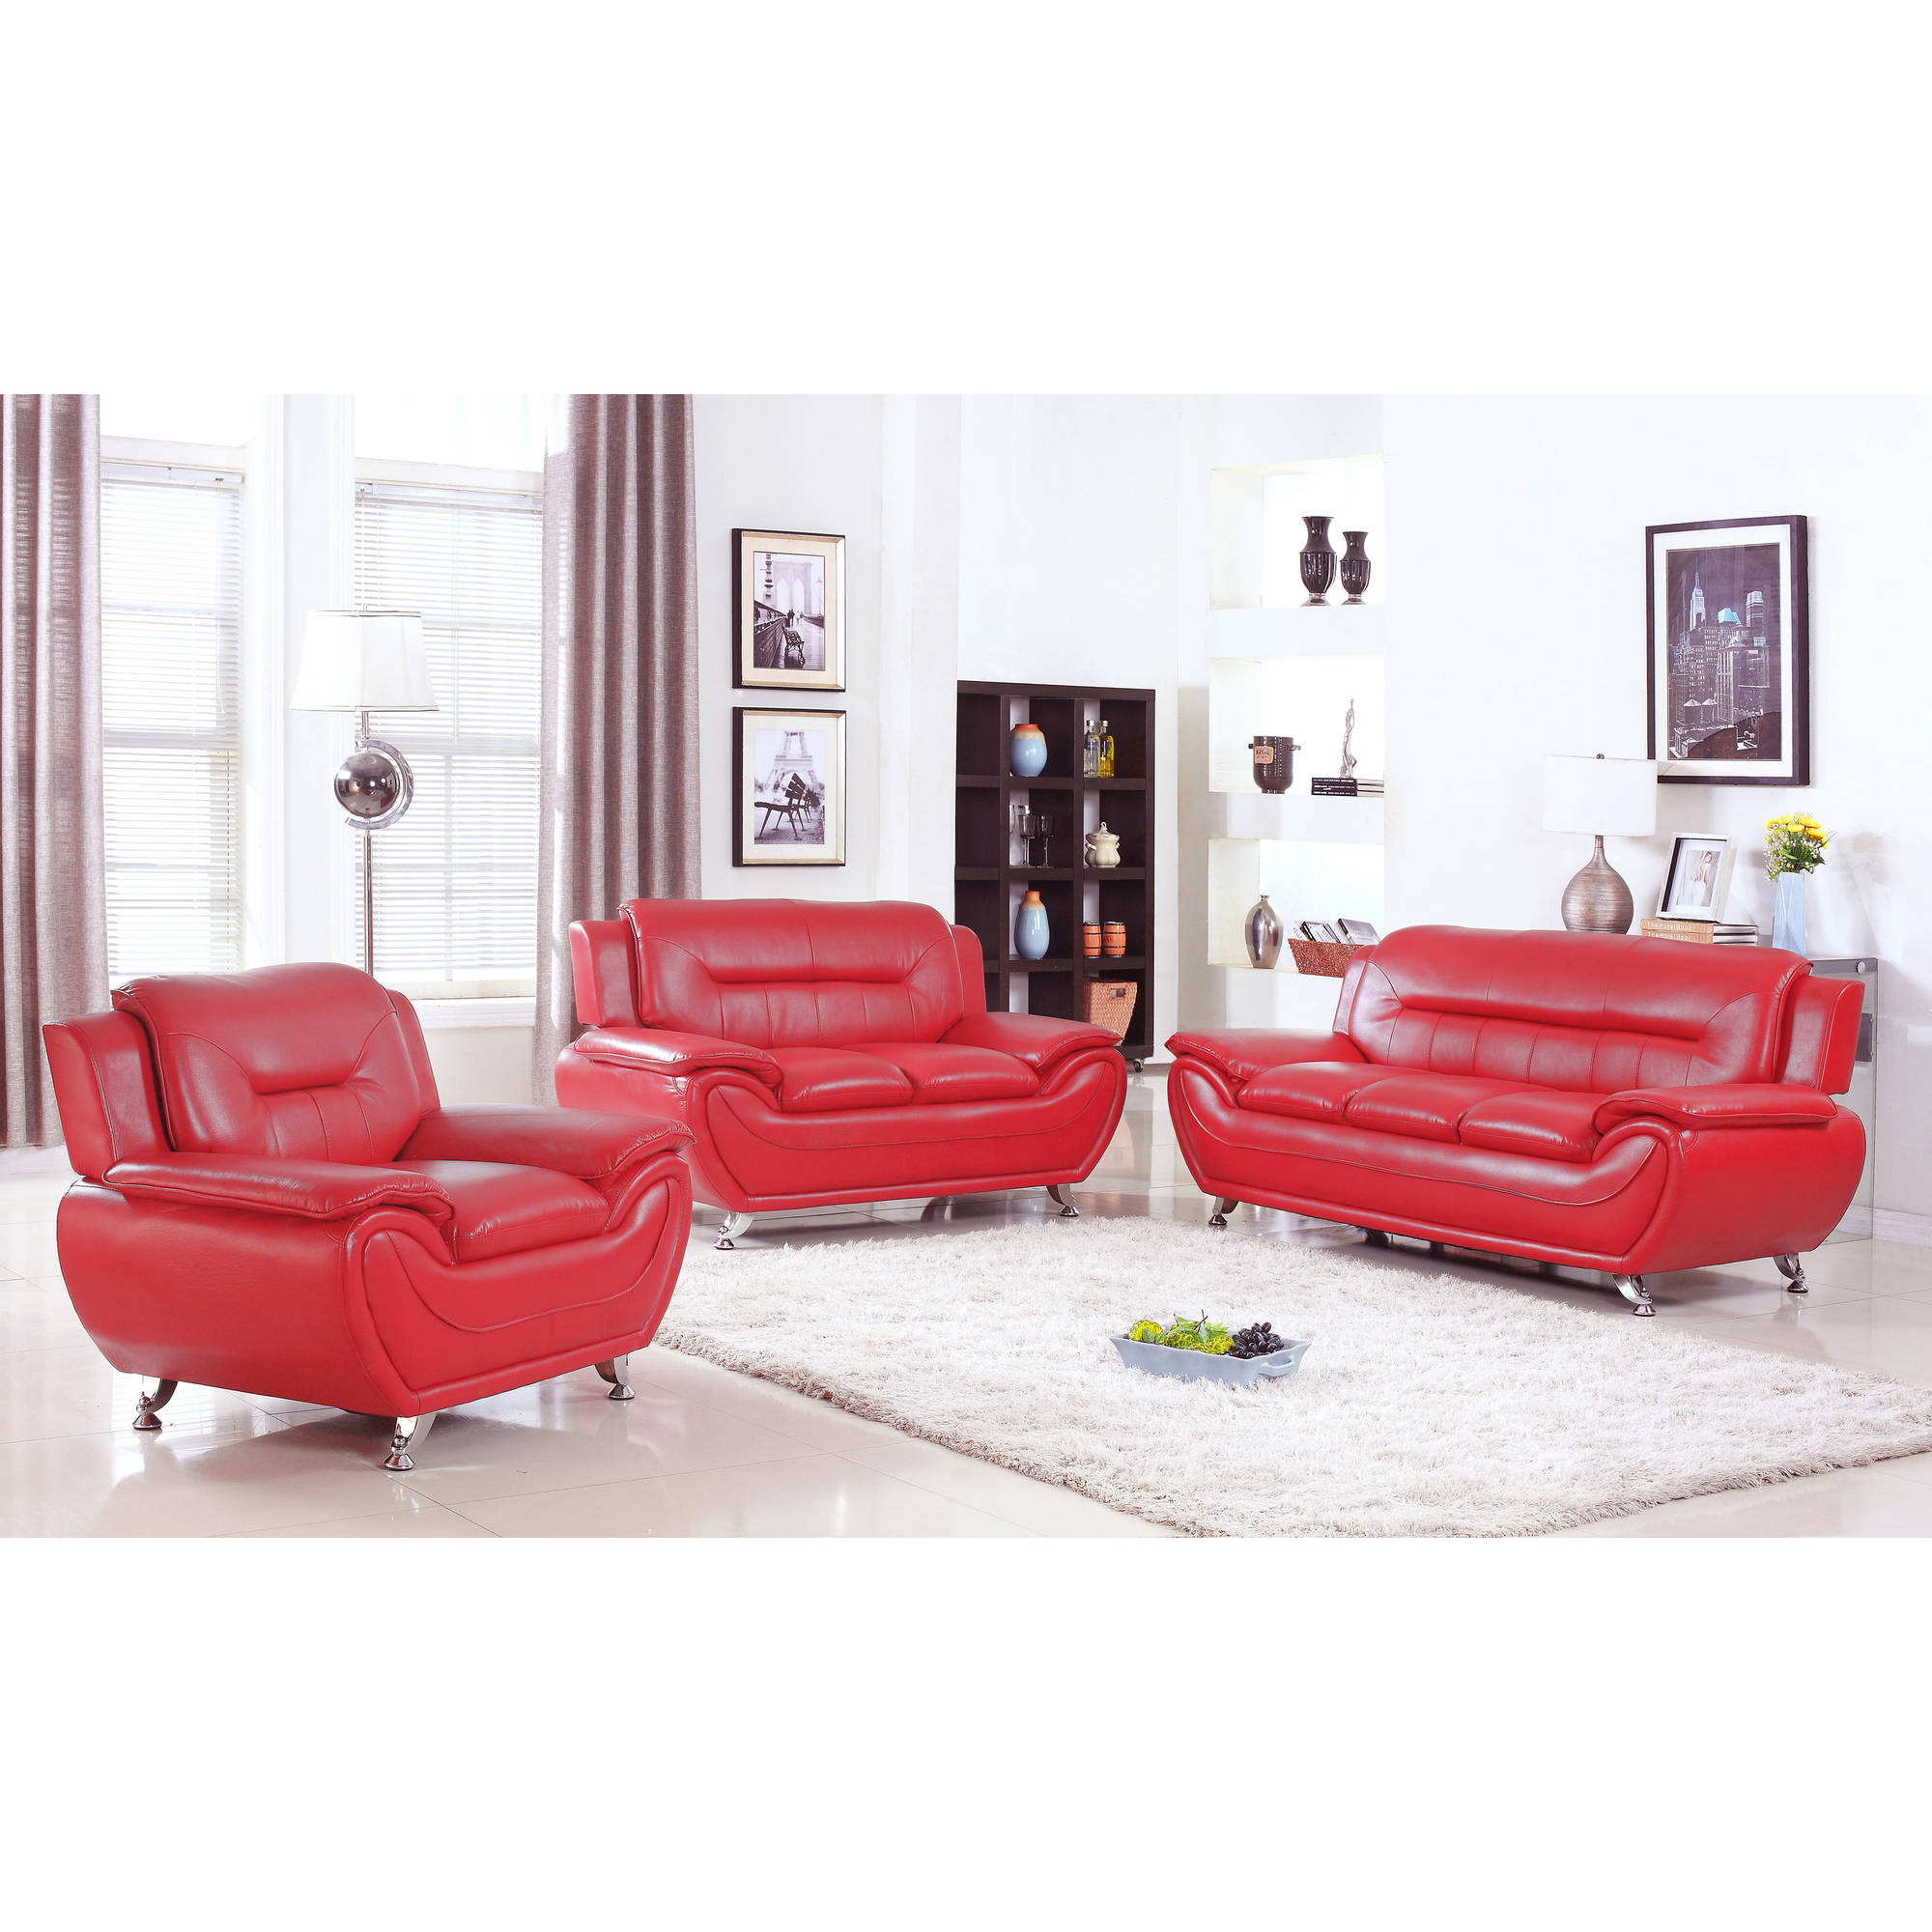 UFE Norton Red Faux Leather 3 Piece Modern Living Room Sofa Set